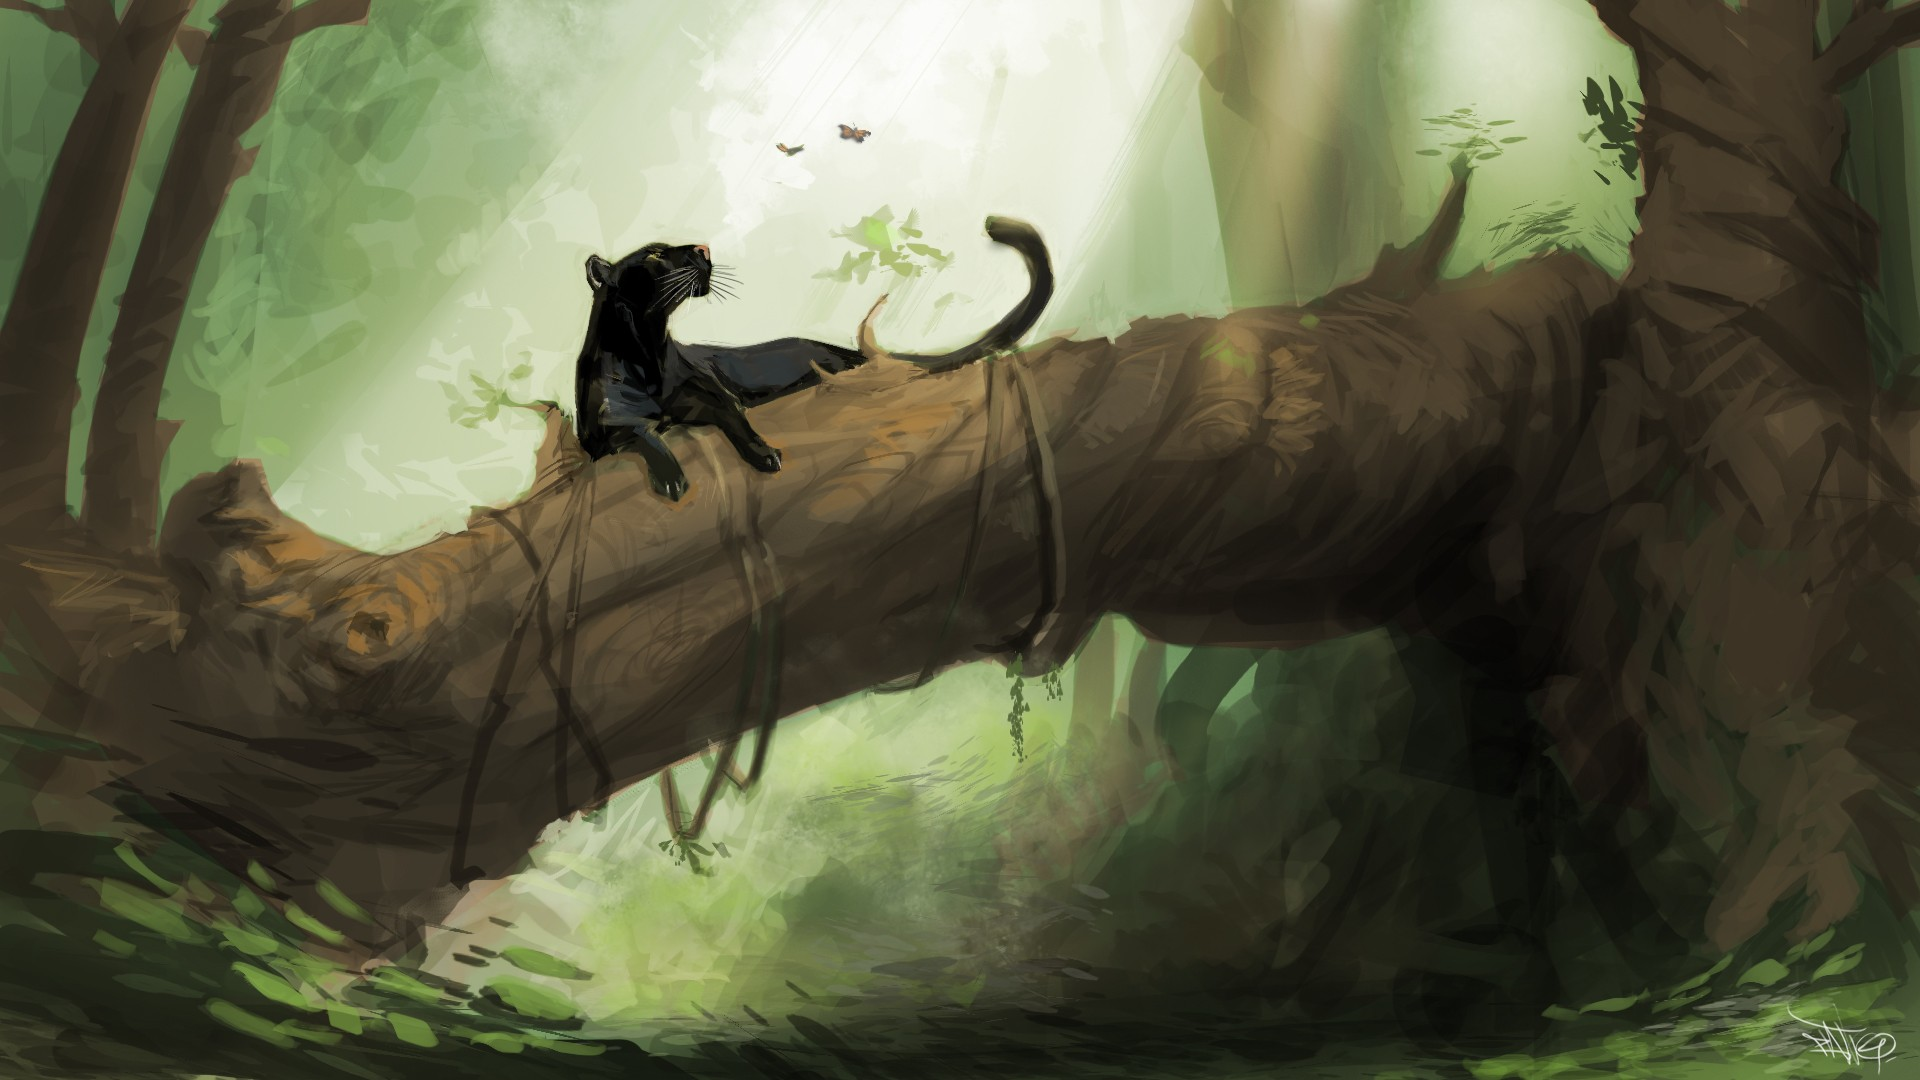 Artwork with a black panther in a tree